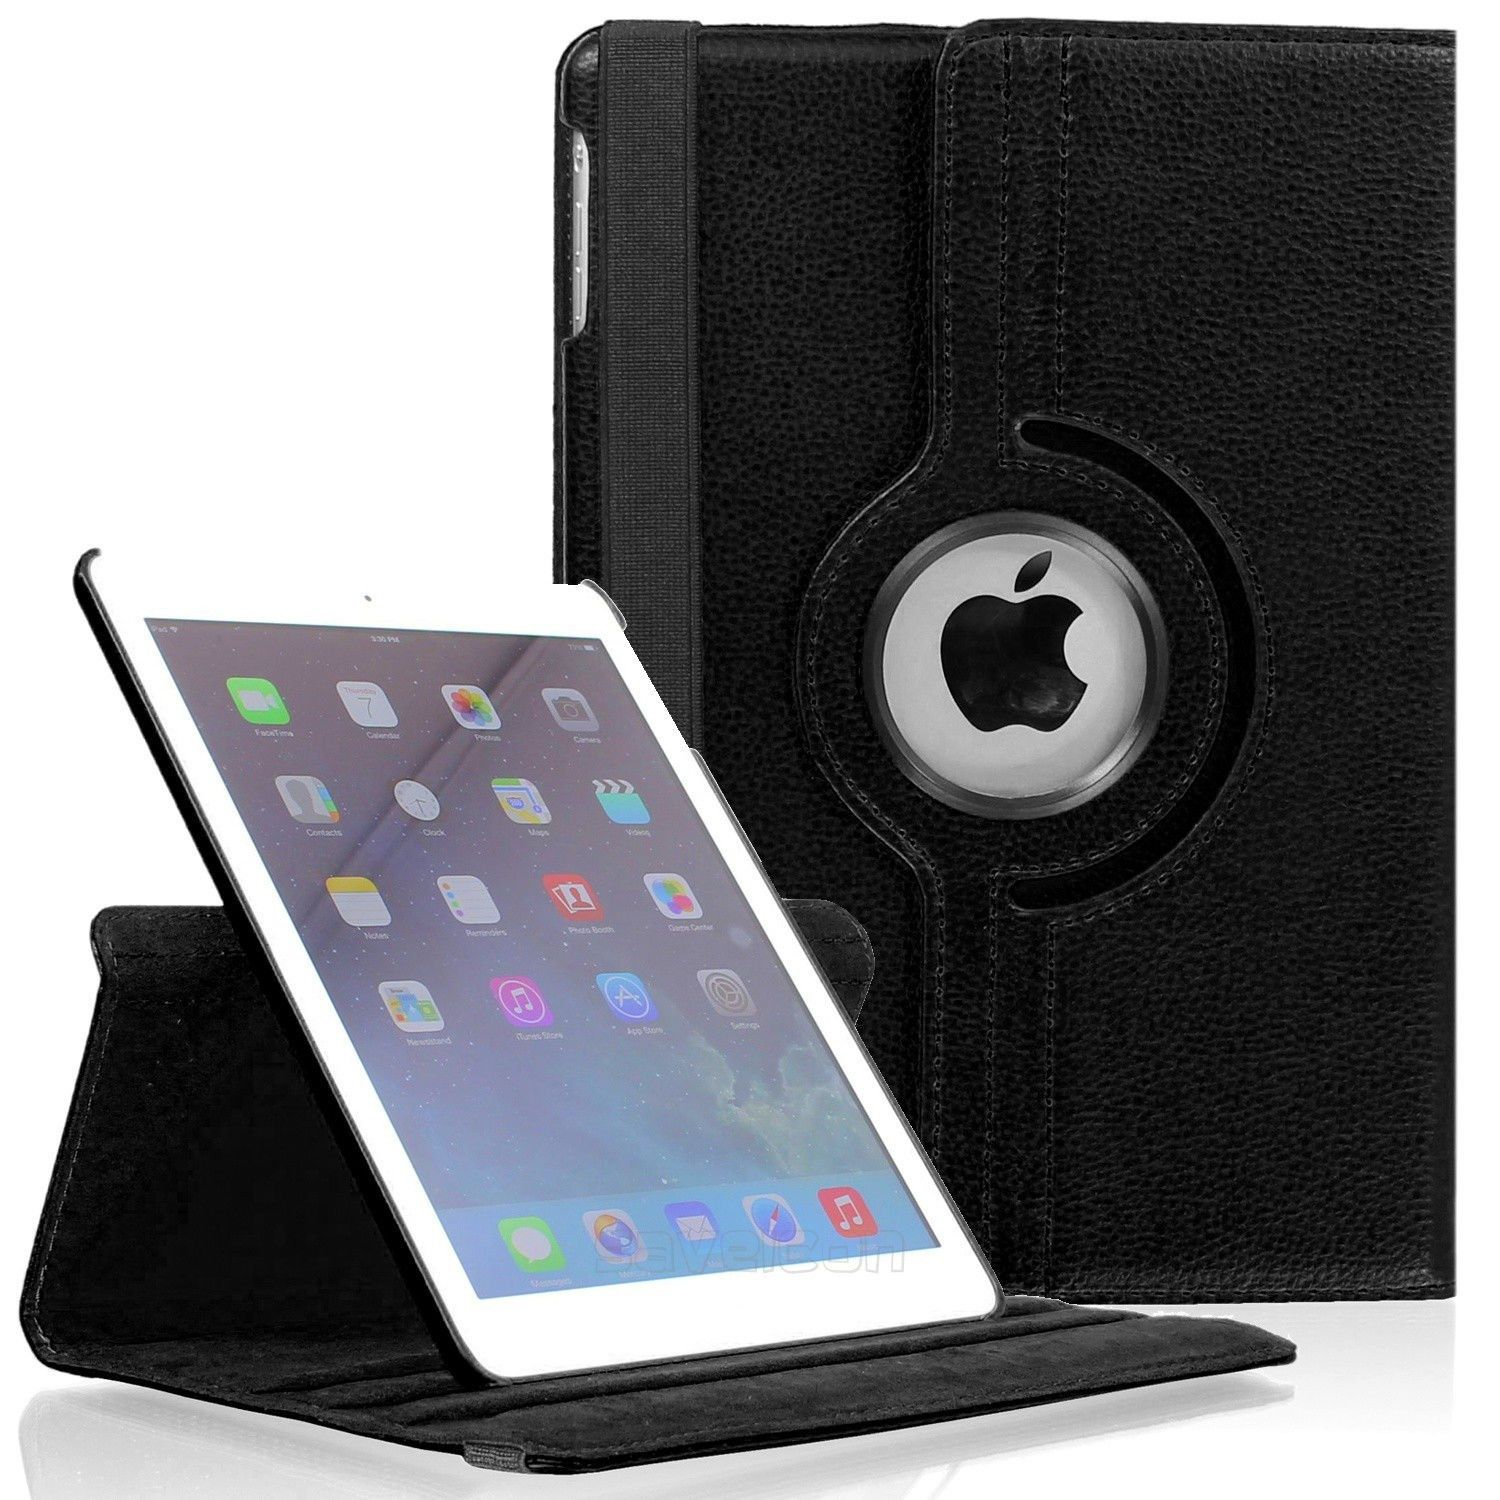 iPad Mini 4 (4th Generation) 7.9 Inch Case by KIQ 360 PU Leather Swivel Case Rotating Fitted Slim Cover Multi-View For Apple iPad Mini 4 4th Gen, Black